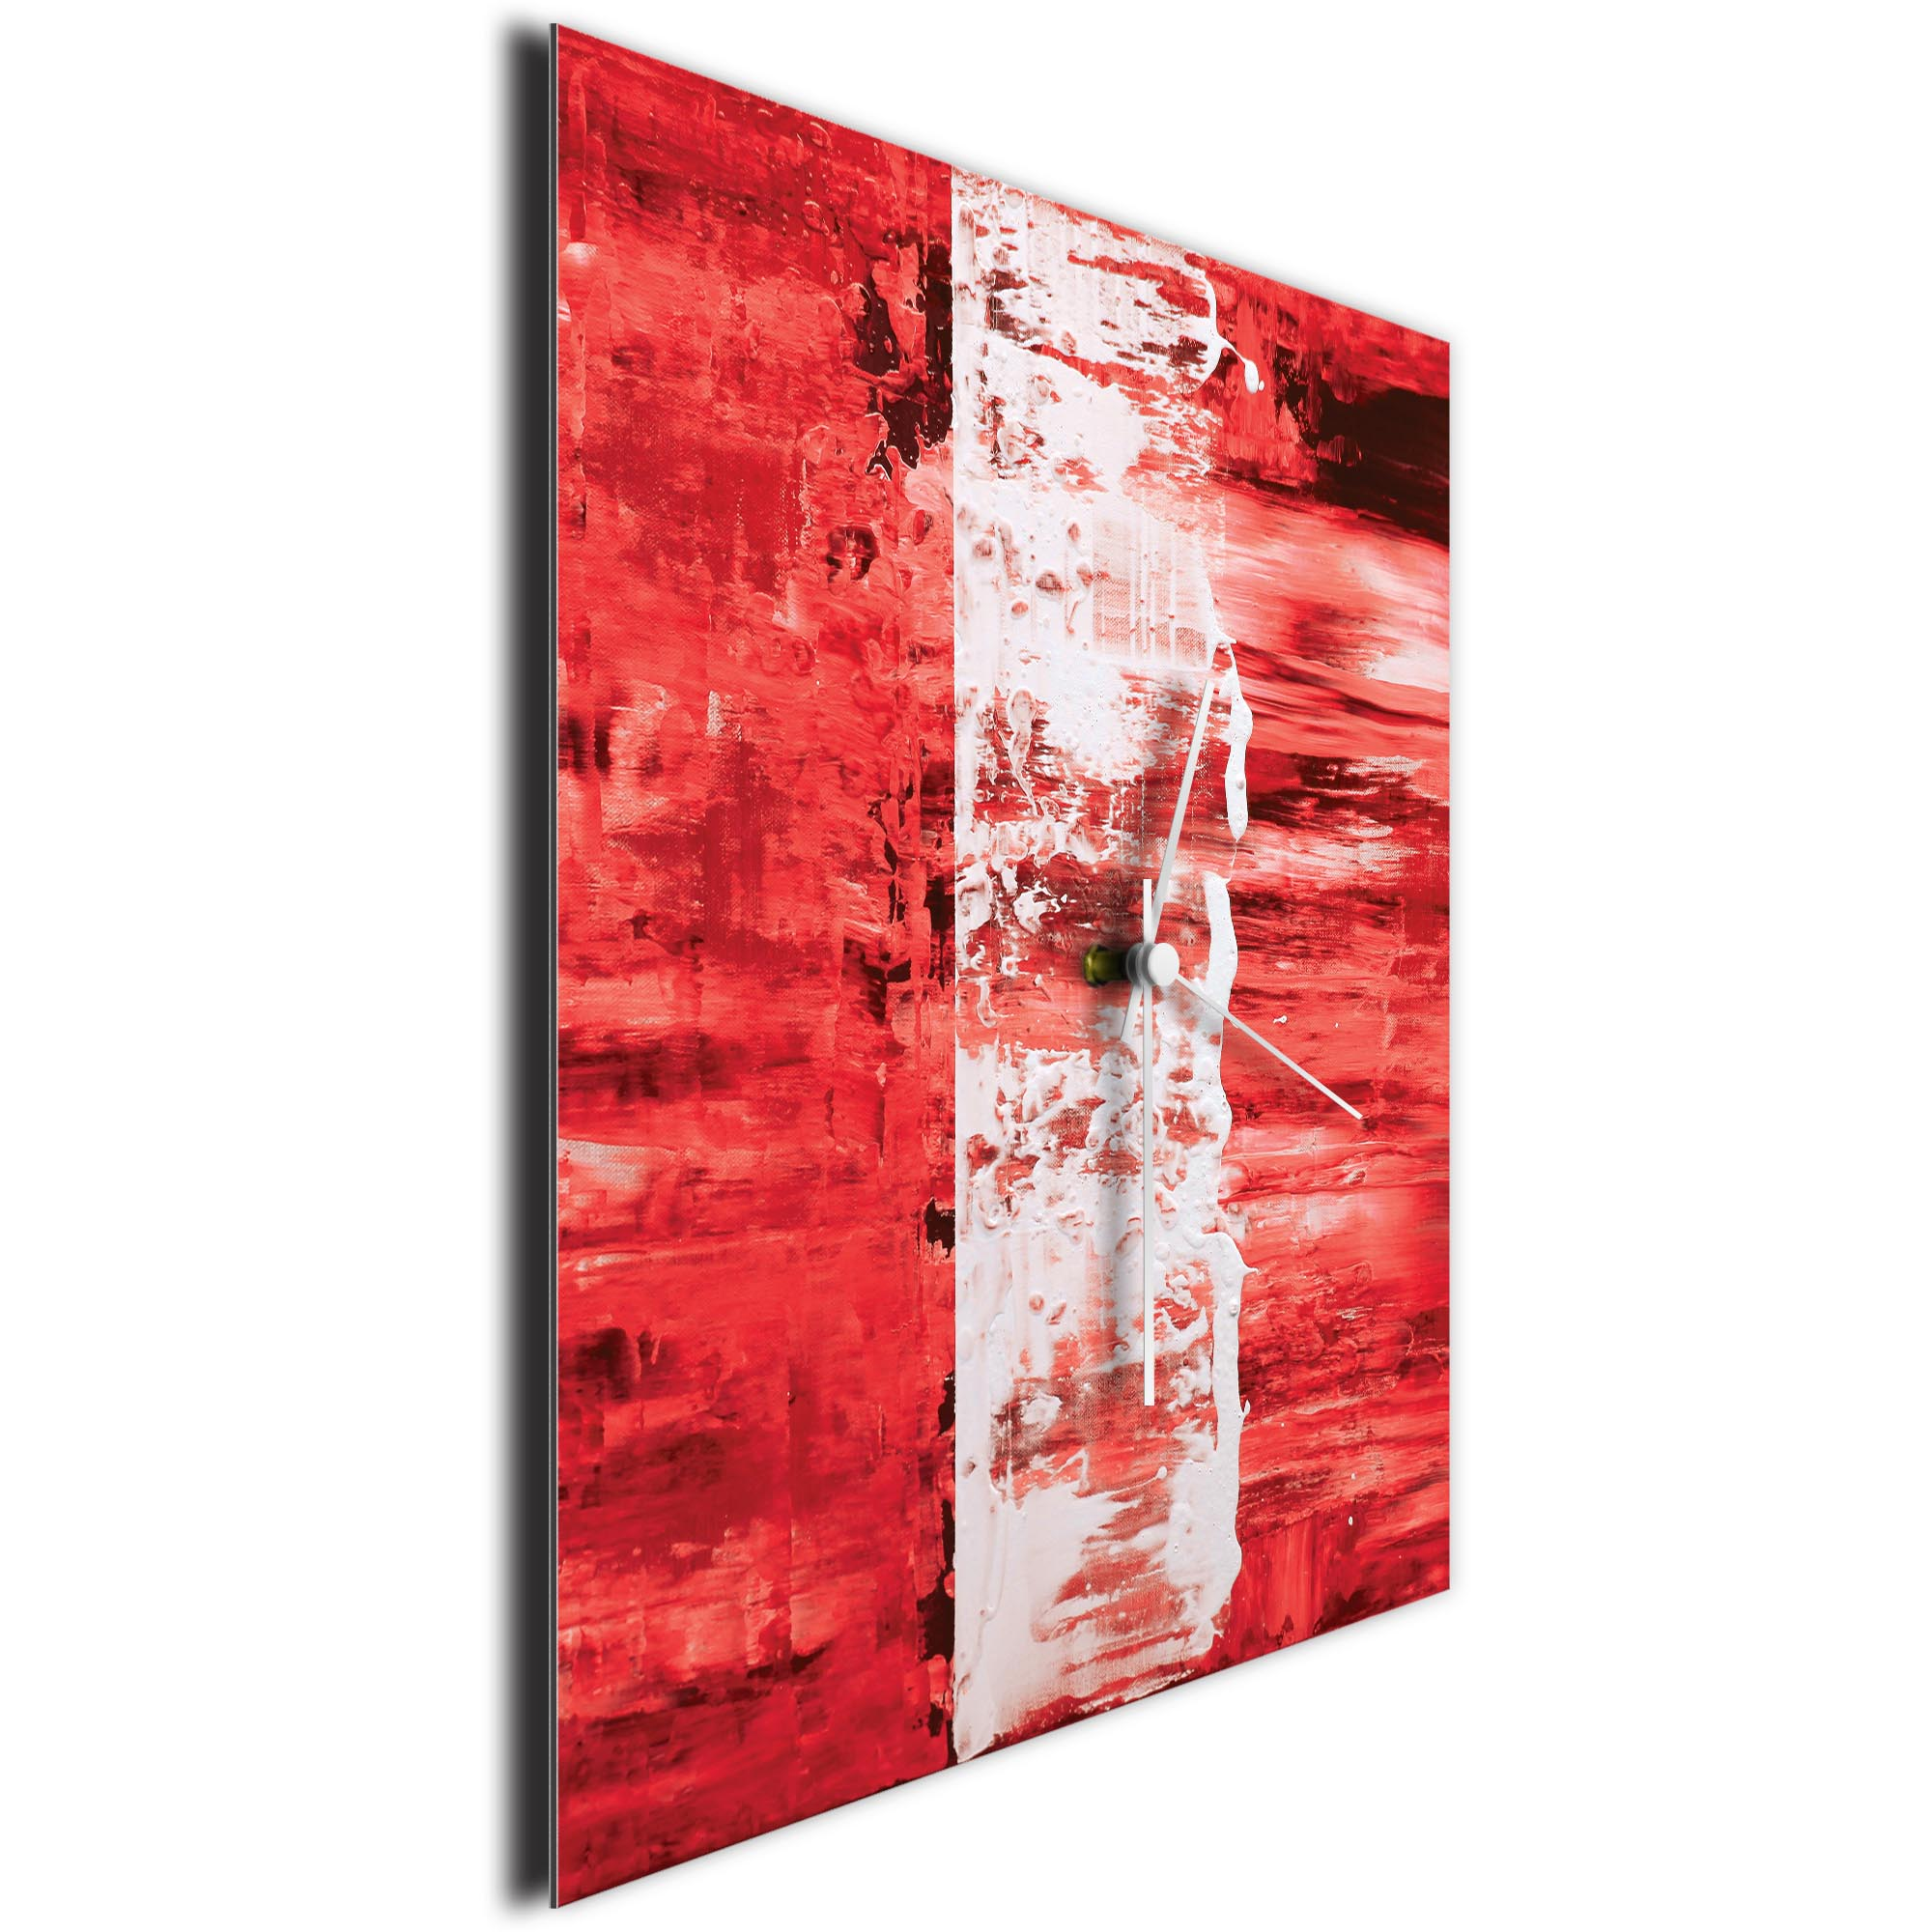 Red Street Square Clock Large by Mendo Vasilevski - Urban Abstract Home Decor - Image 3